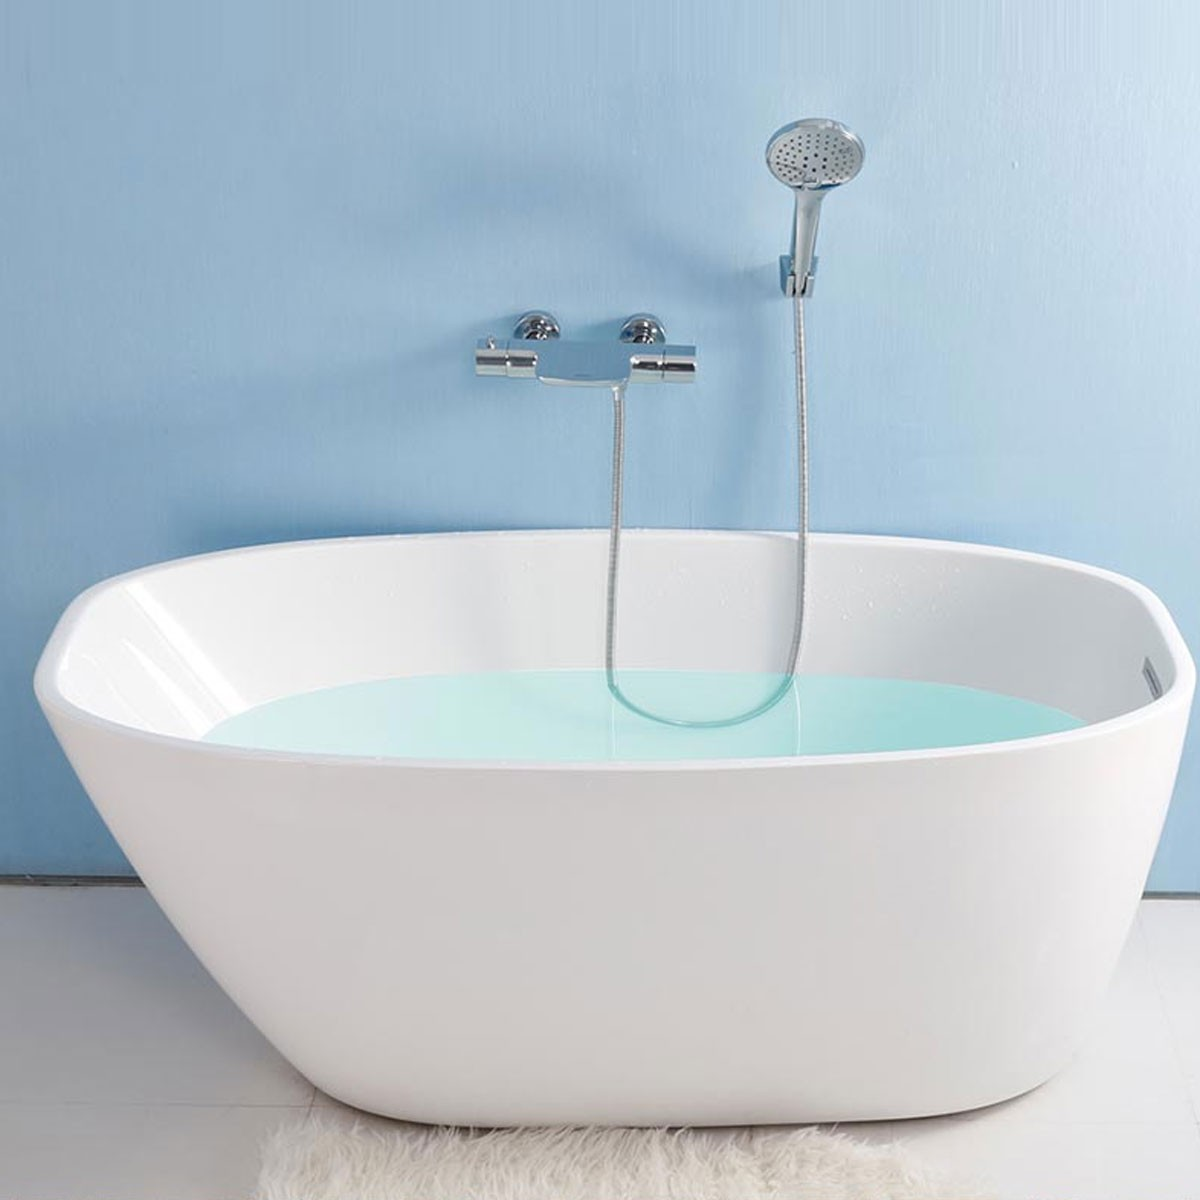 59 In Freestanding Bathtub - Acrylic White (DK-YU-15575 ...